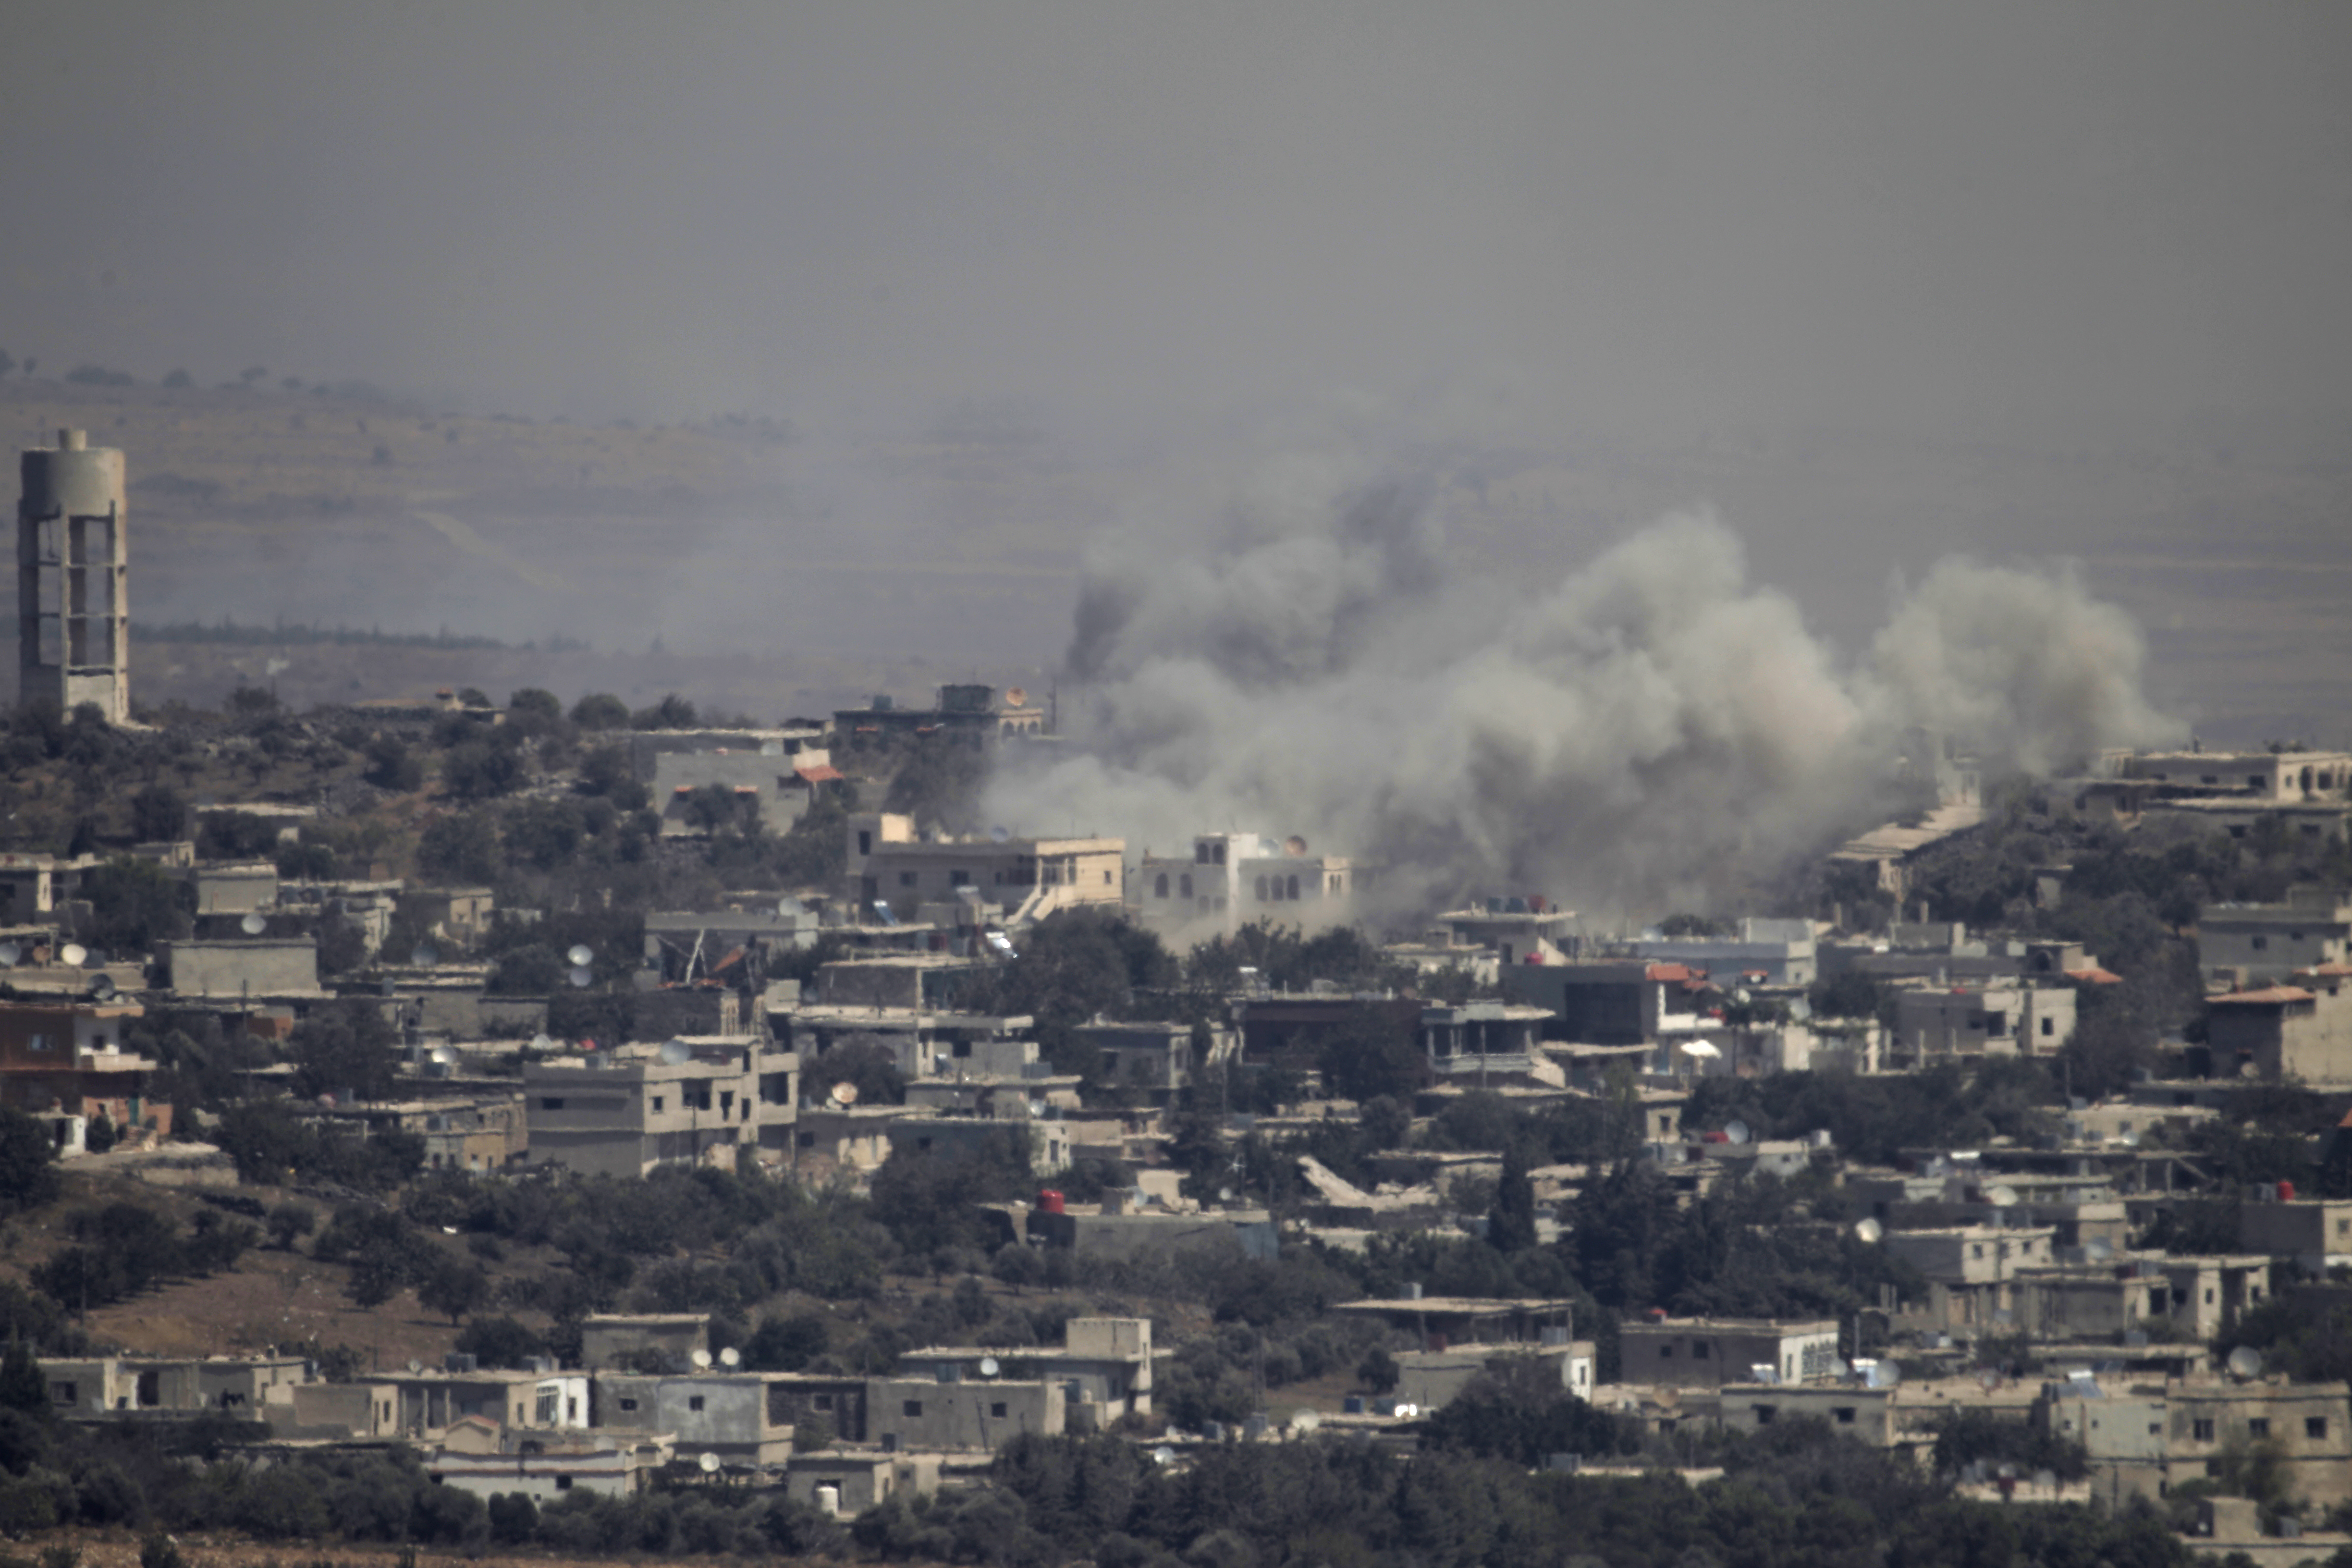 A picture taken from the Israeli-annexed Golan Heights shows smoke rising from the Syrian village of Jubata al-Khashab, Sept. 10, 2016. Israeli aircraft struck Syrian army positions Sept. 10 after fire from war-torn Syria hit the  Israeli-held zone o...